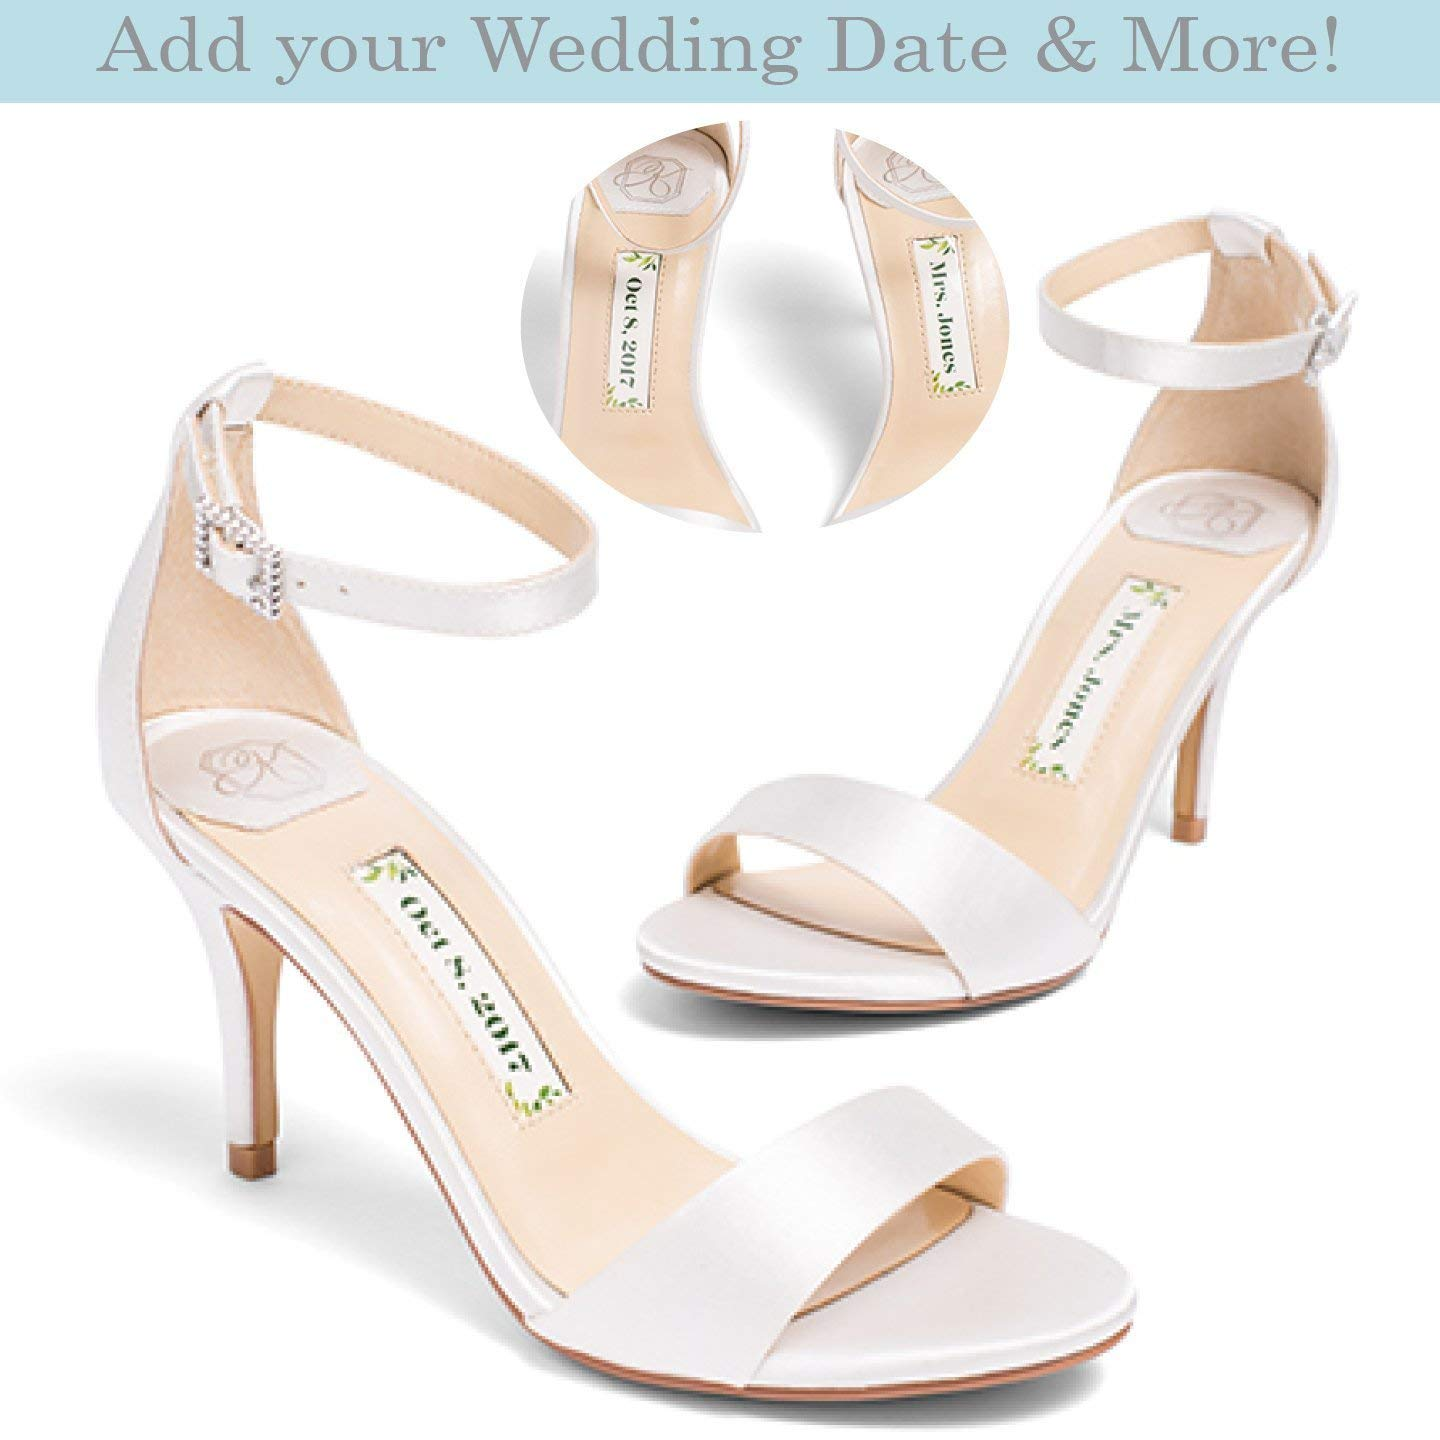 "c93149c84de Get Quotations · Bridal Women s High Heel Ivory Satin Wedding Shoe – Kate  Whitcomb Shoes style "" ..."